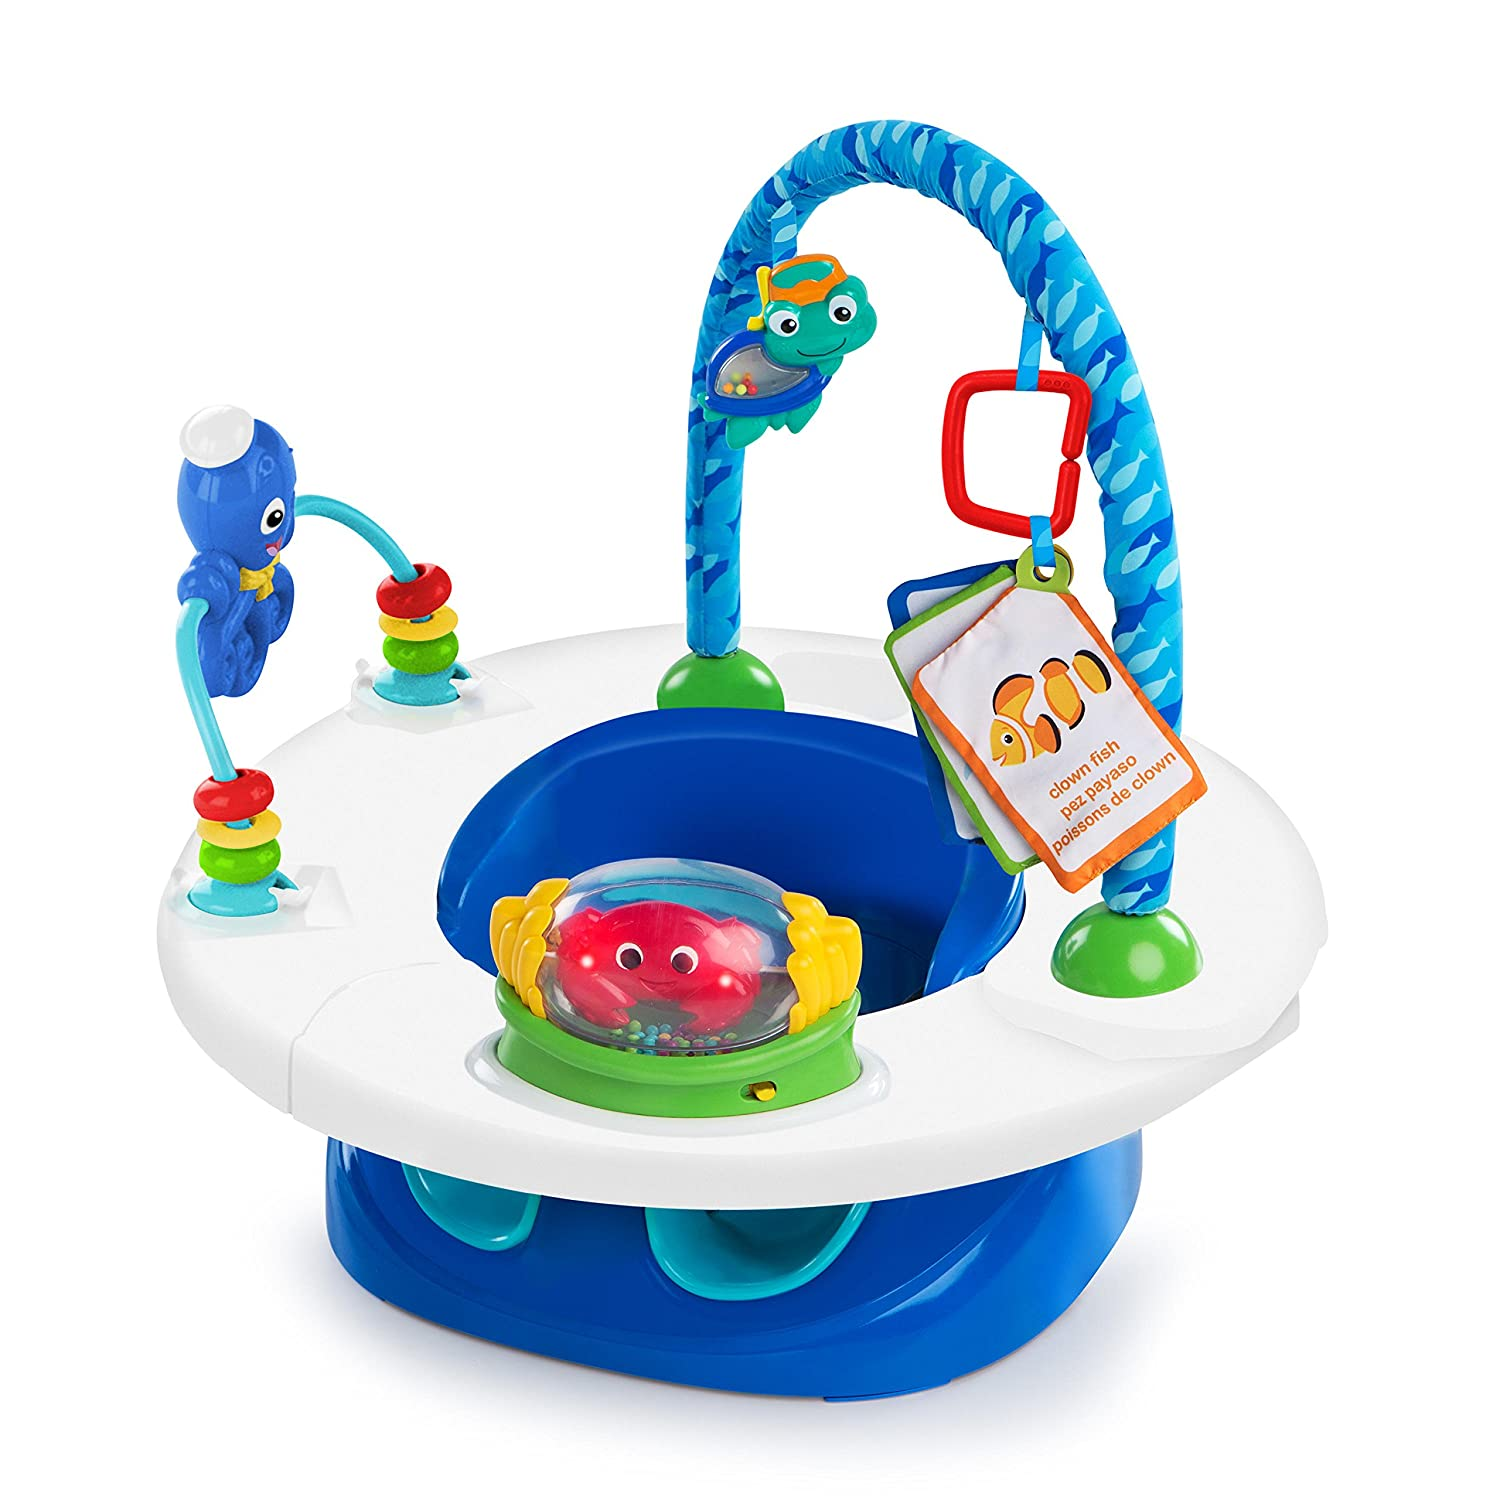 Baby Einstein 3-in-1 Snack and Discover Seat Kids II UK Limited 10921